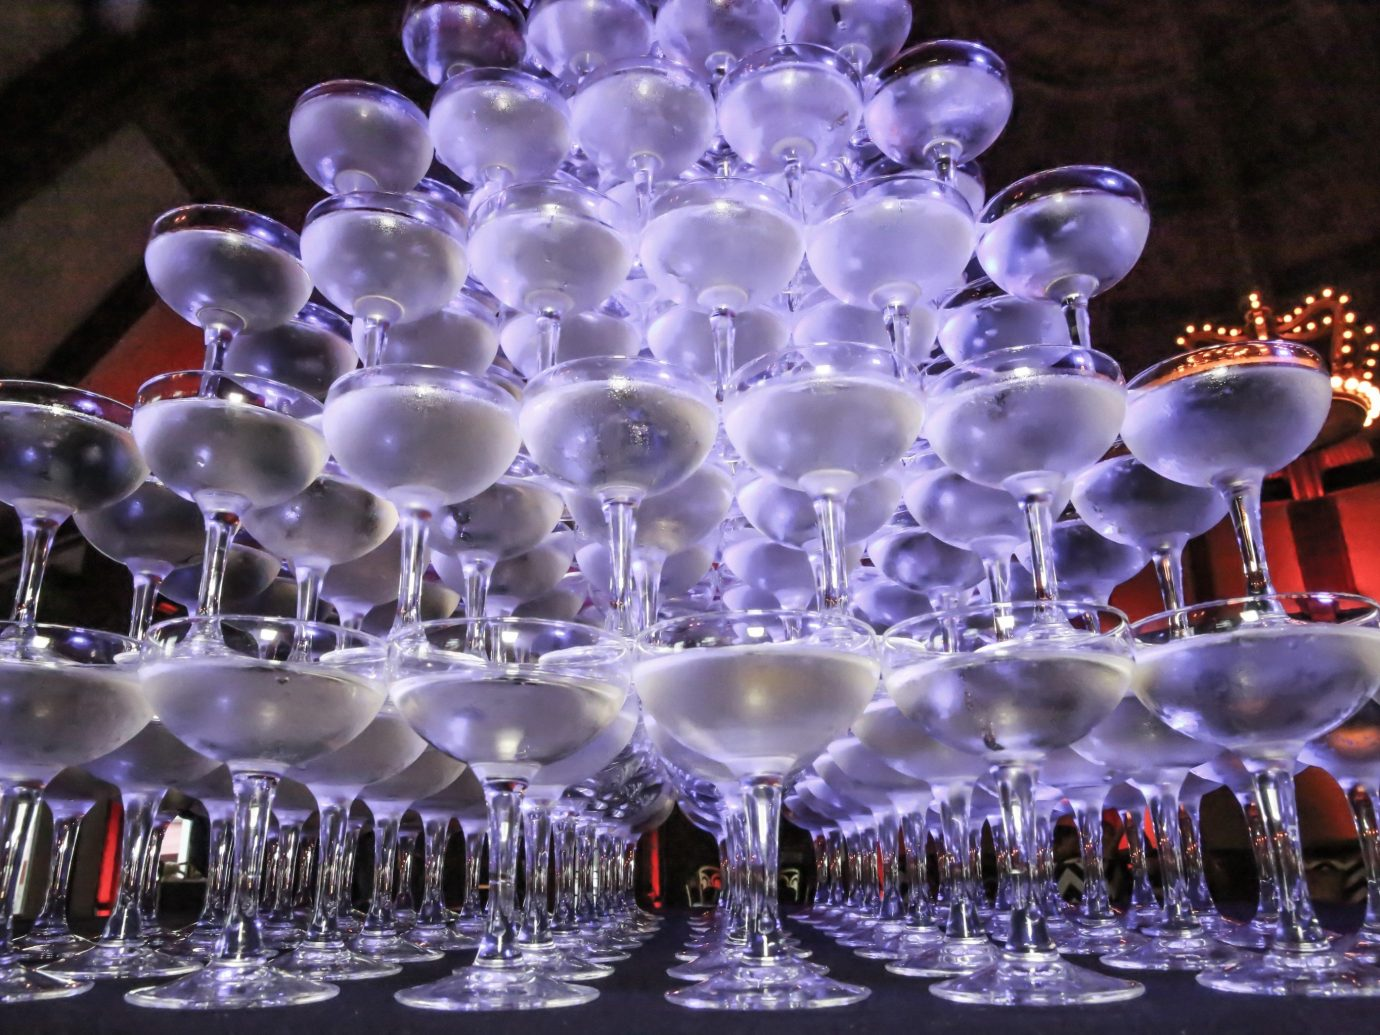 Trip Ideas glasses wine glass centrepiece lighting container chandelier christmas lights flower empty several